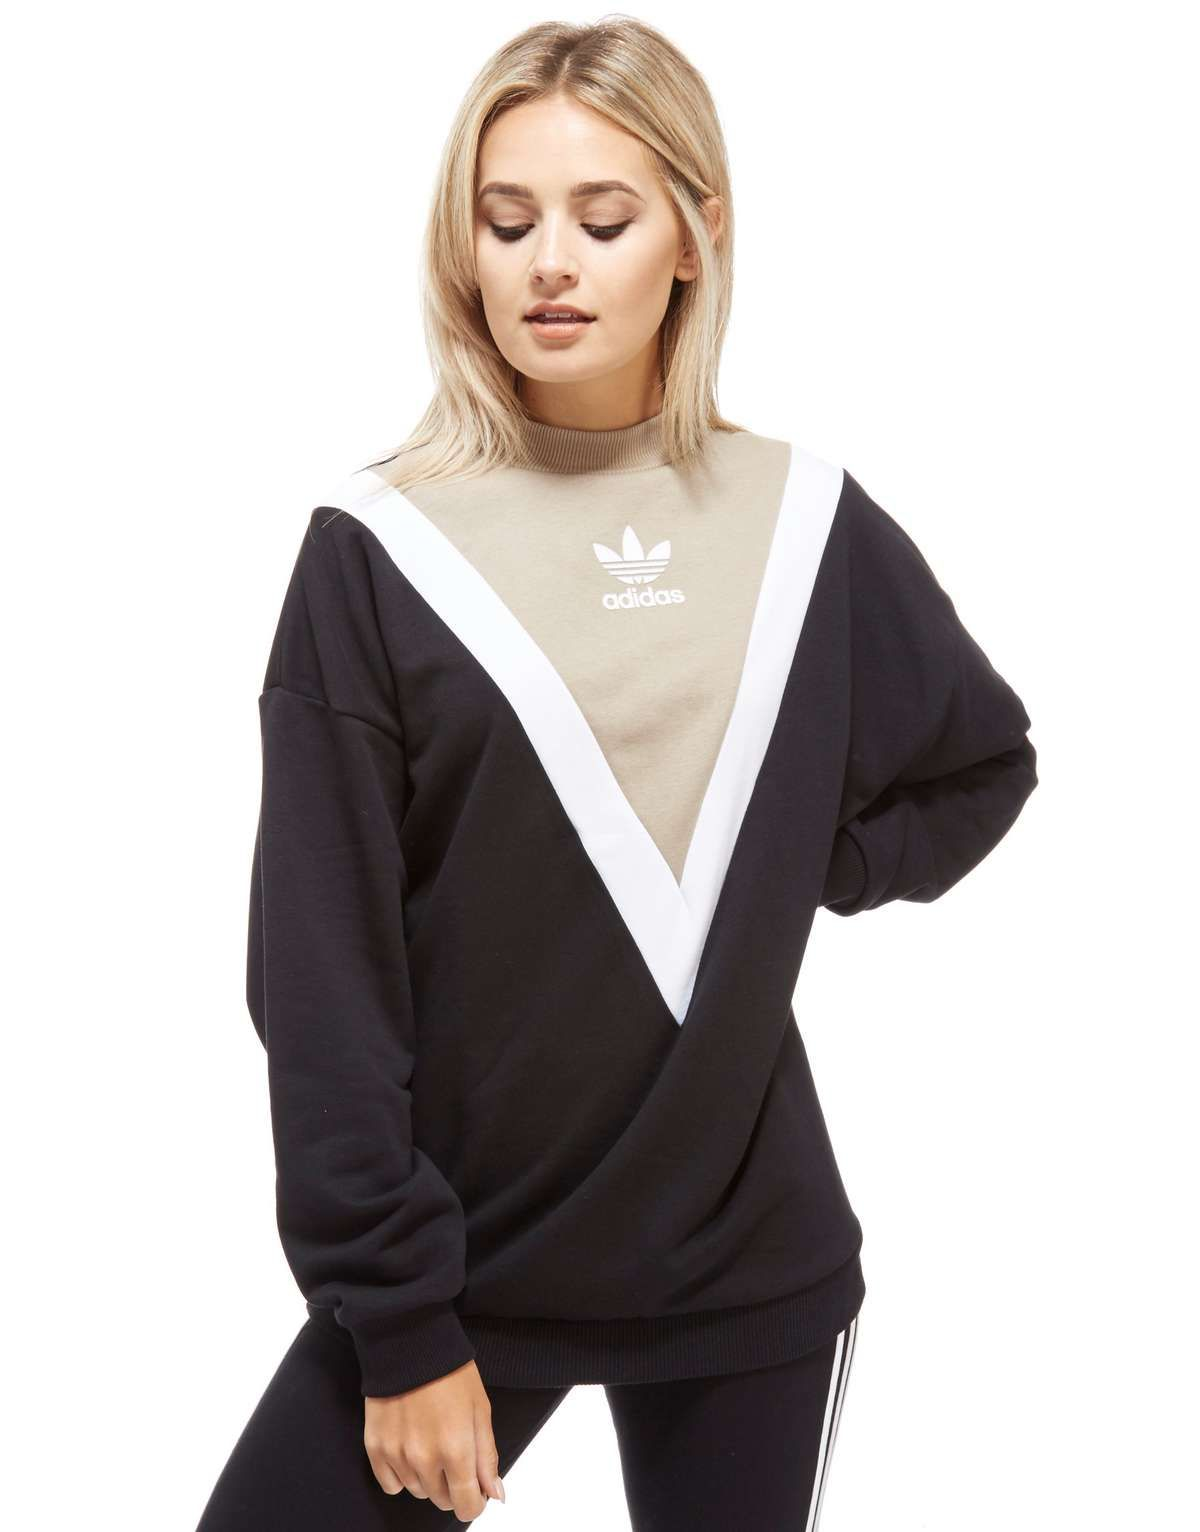 d8f93320e adidas Originals Chevron Sweatshirt